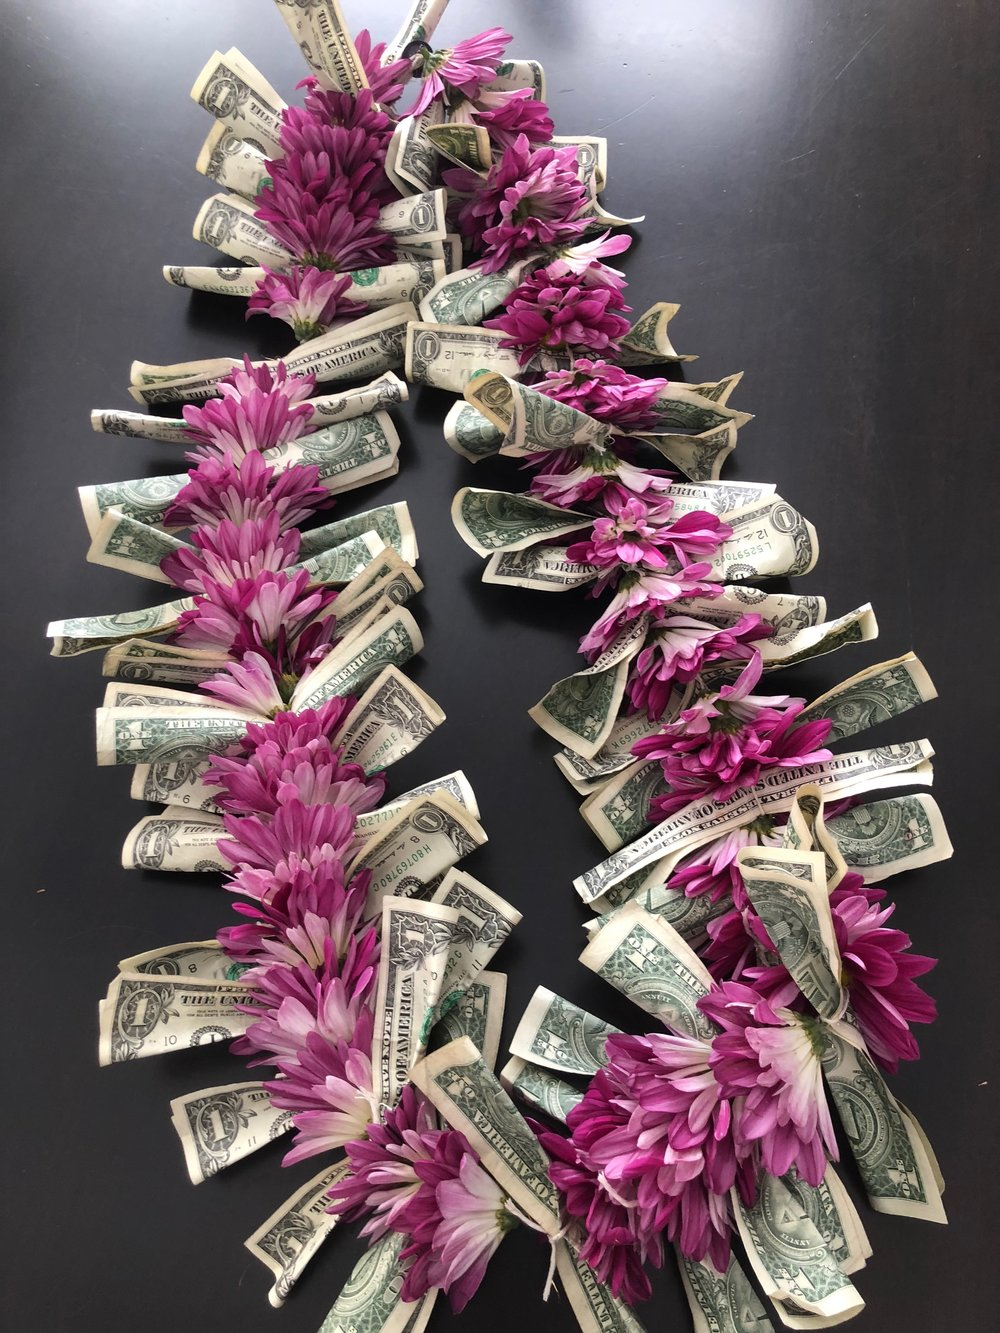 A fortieth birthday  thoughtful pinch . Making a lei is something I've never done before but now I feel empowered because I tried something new!